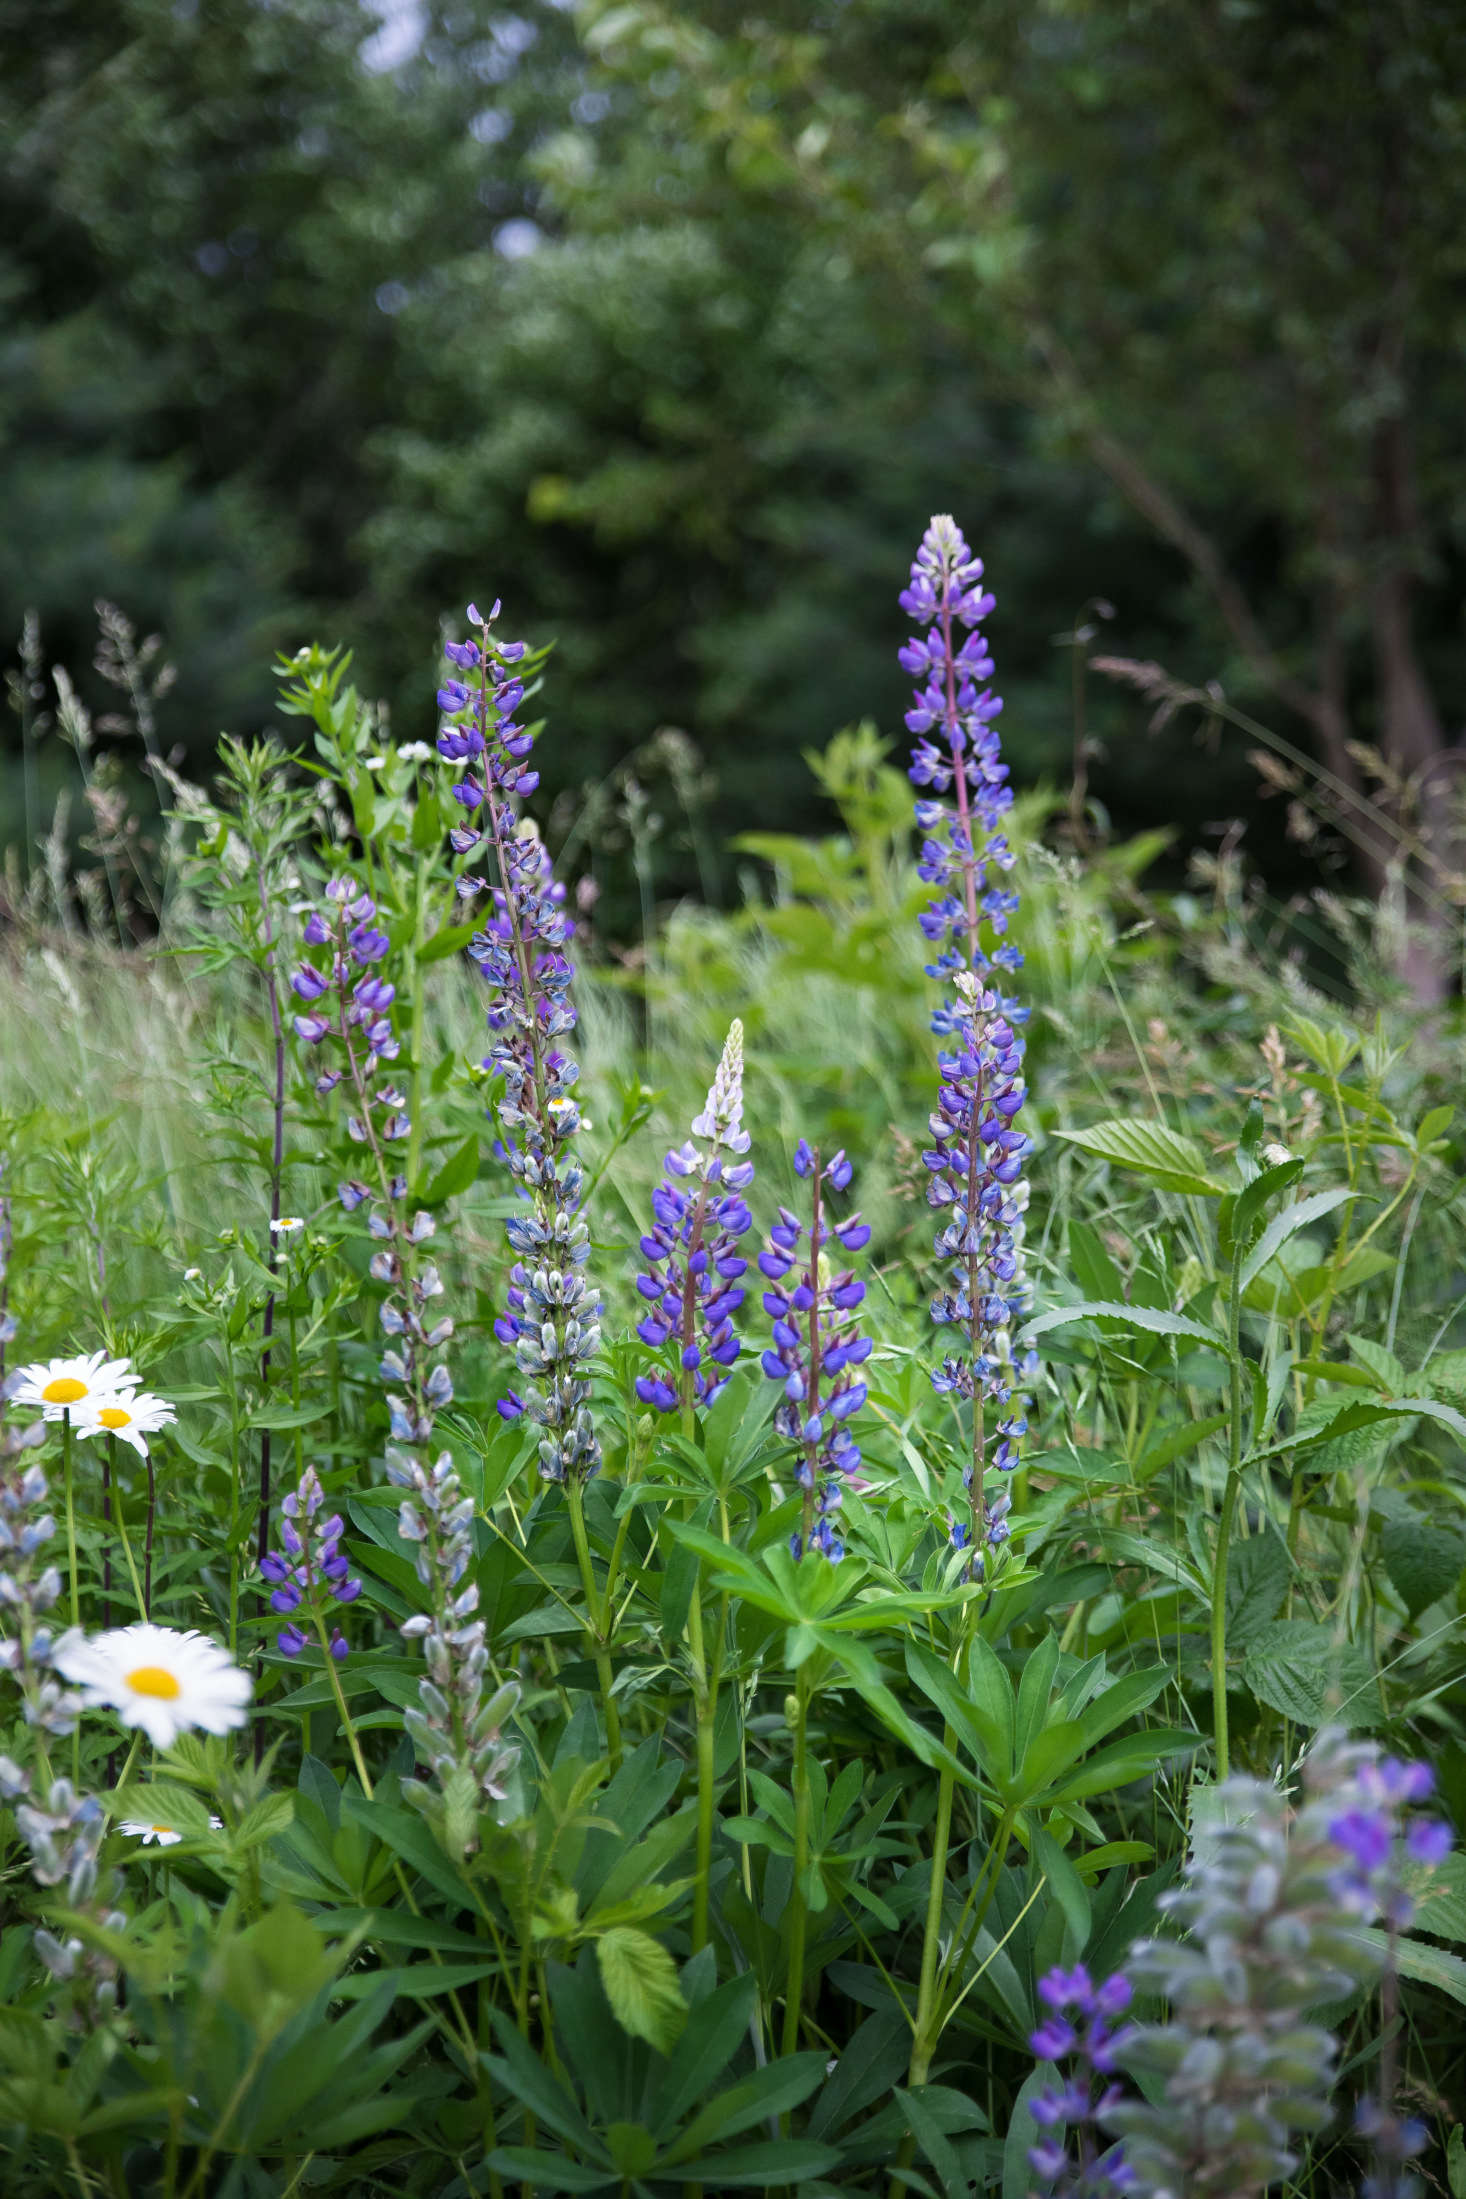 Planted among the grasses along the drive, lupine and daisies provide a bit of color and cheer.